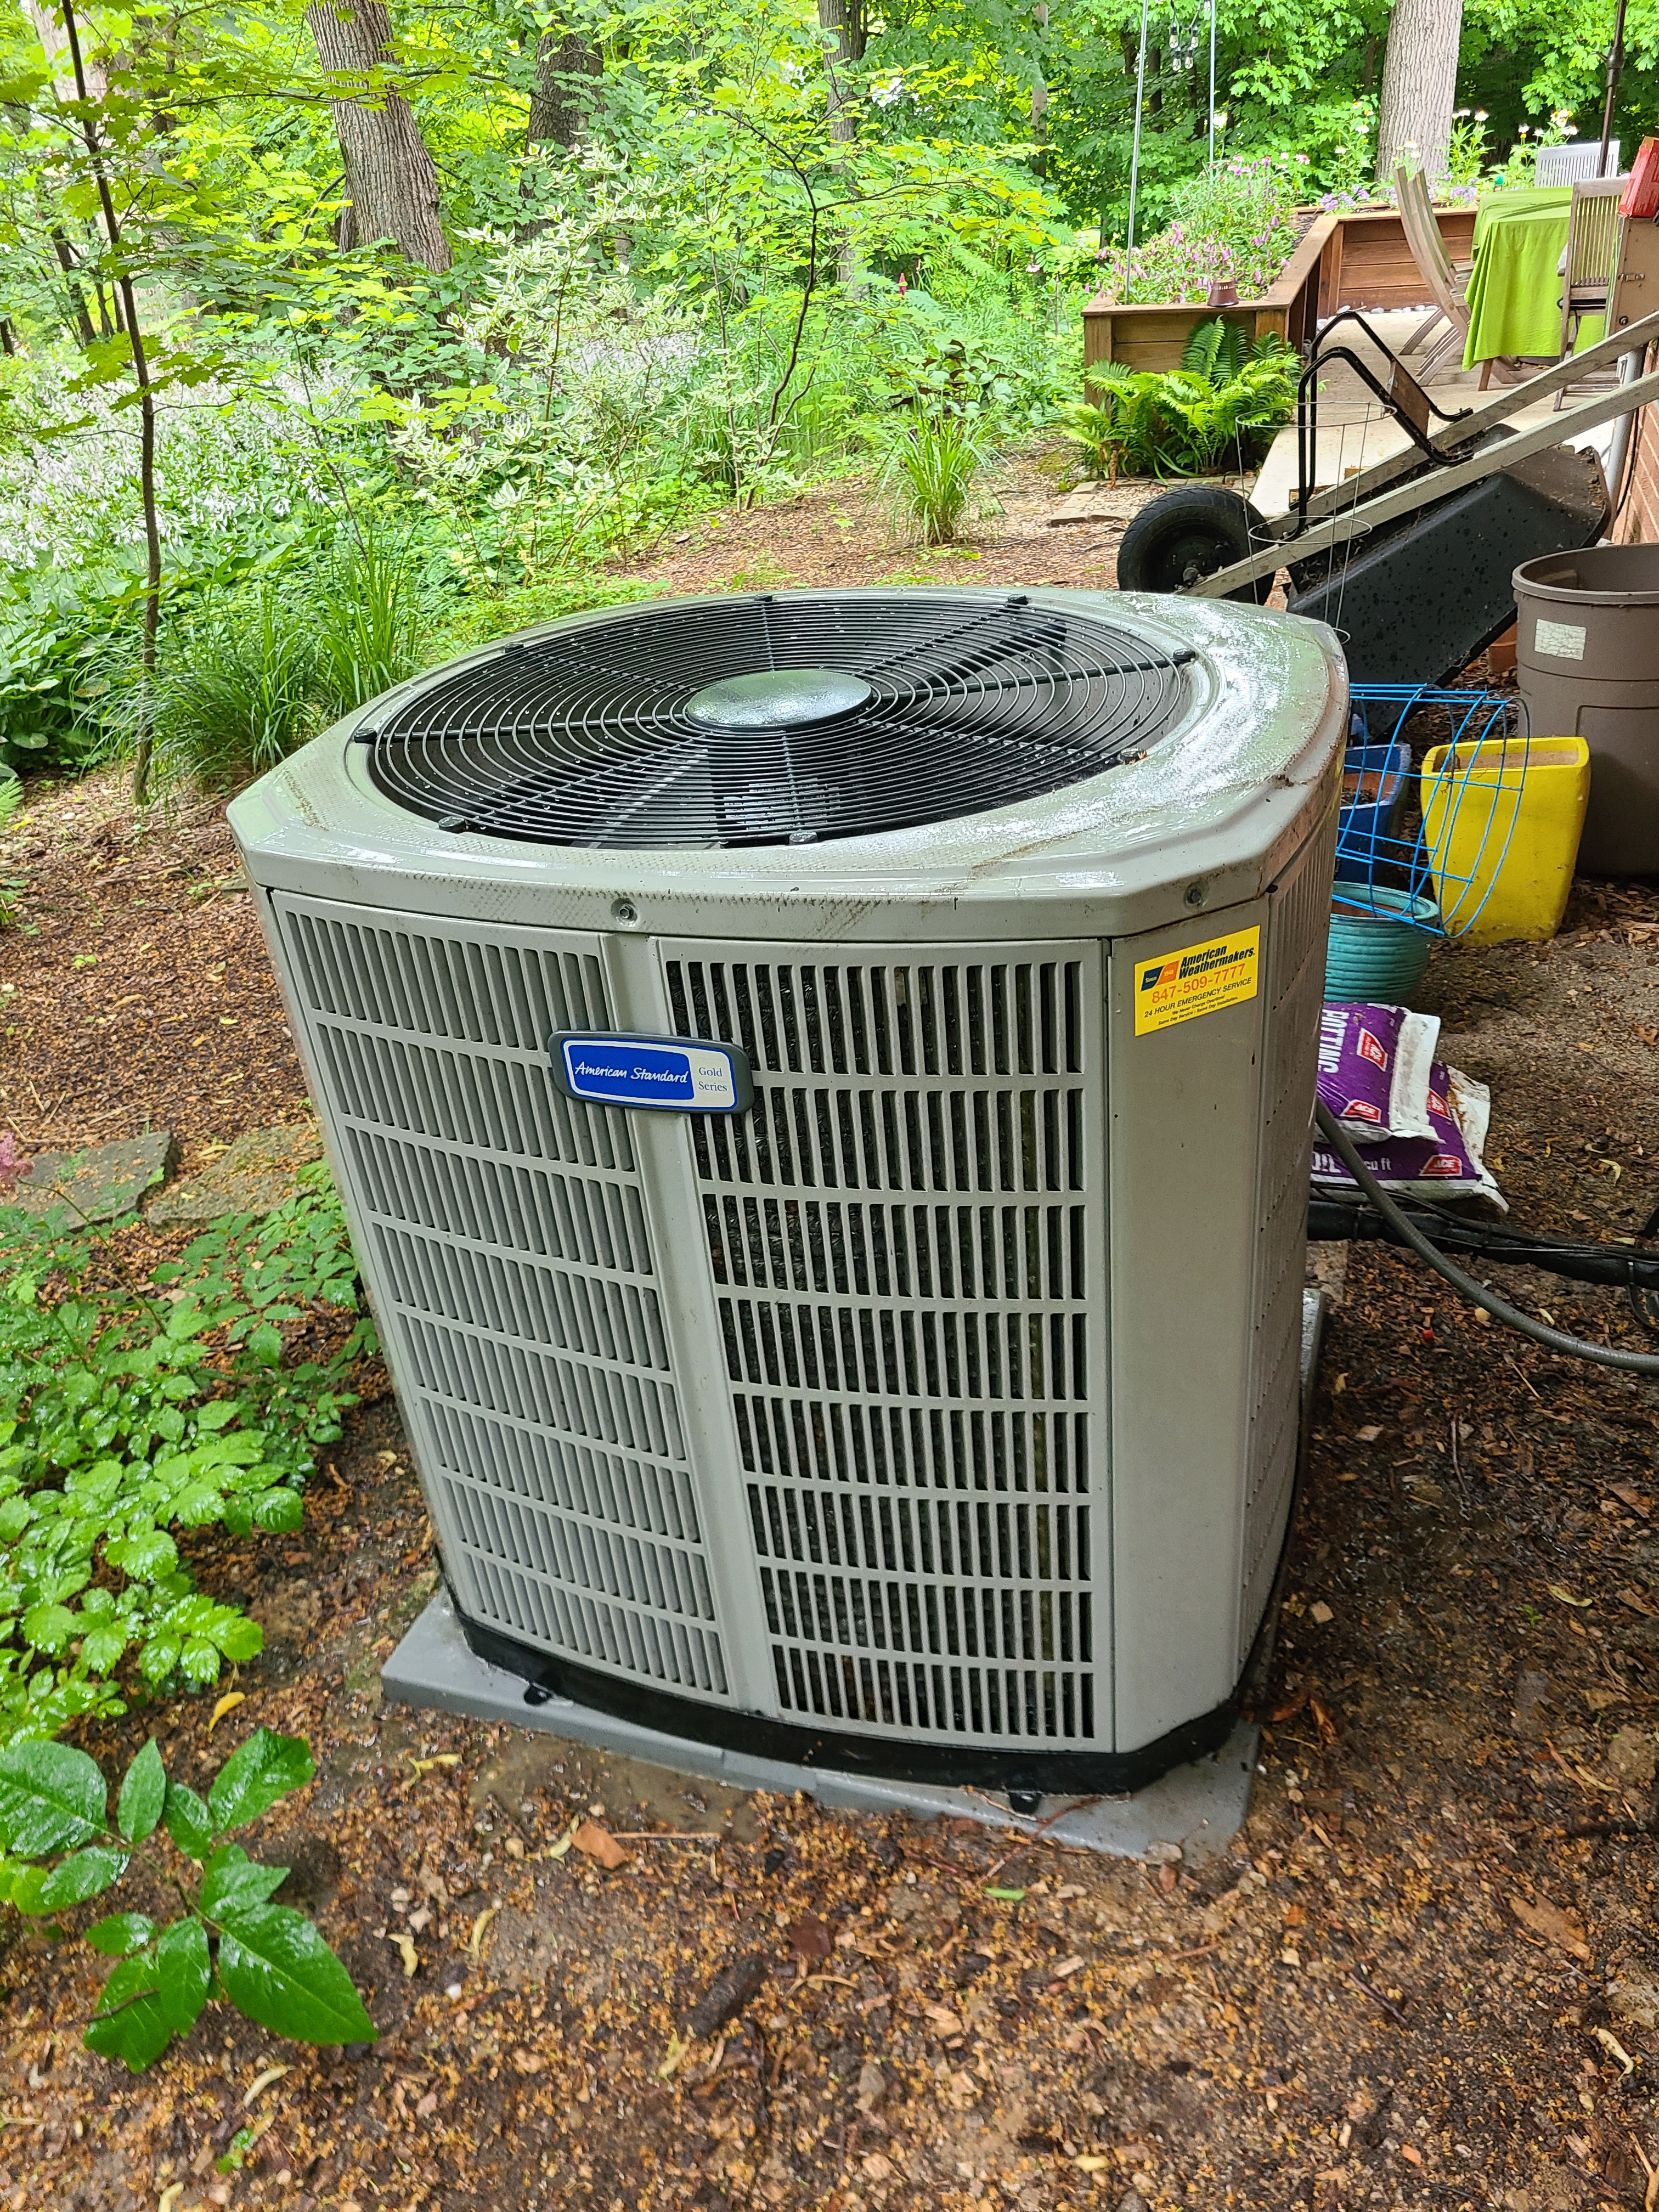 American Standard r410a system...extremely dirty...cleaned up and cooling restored